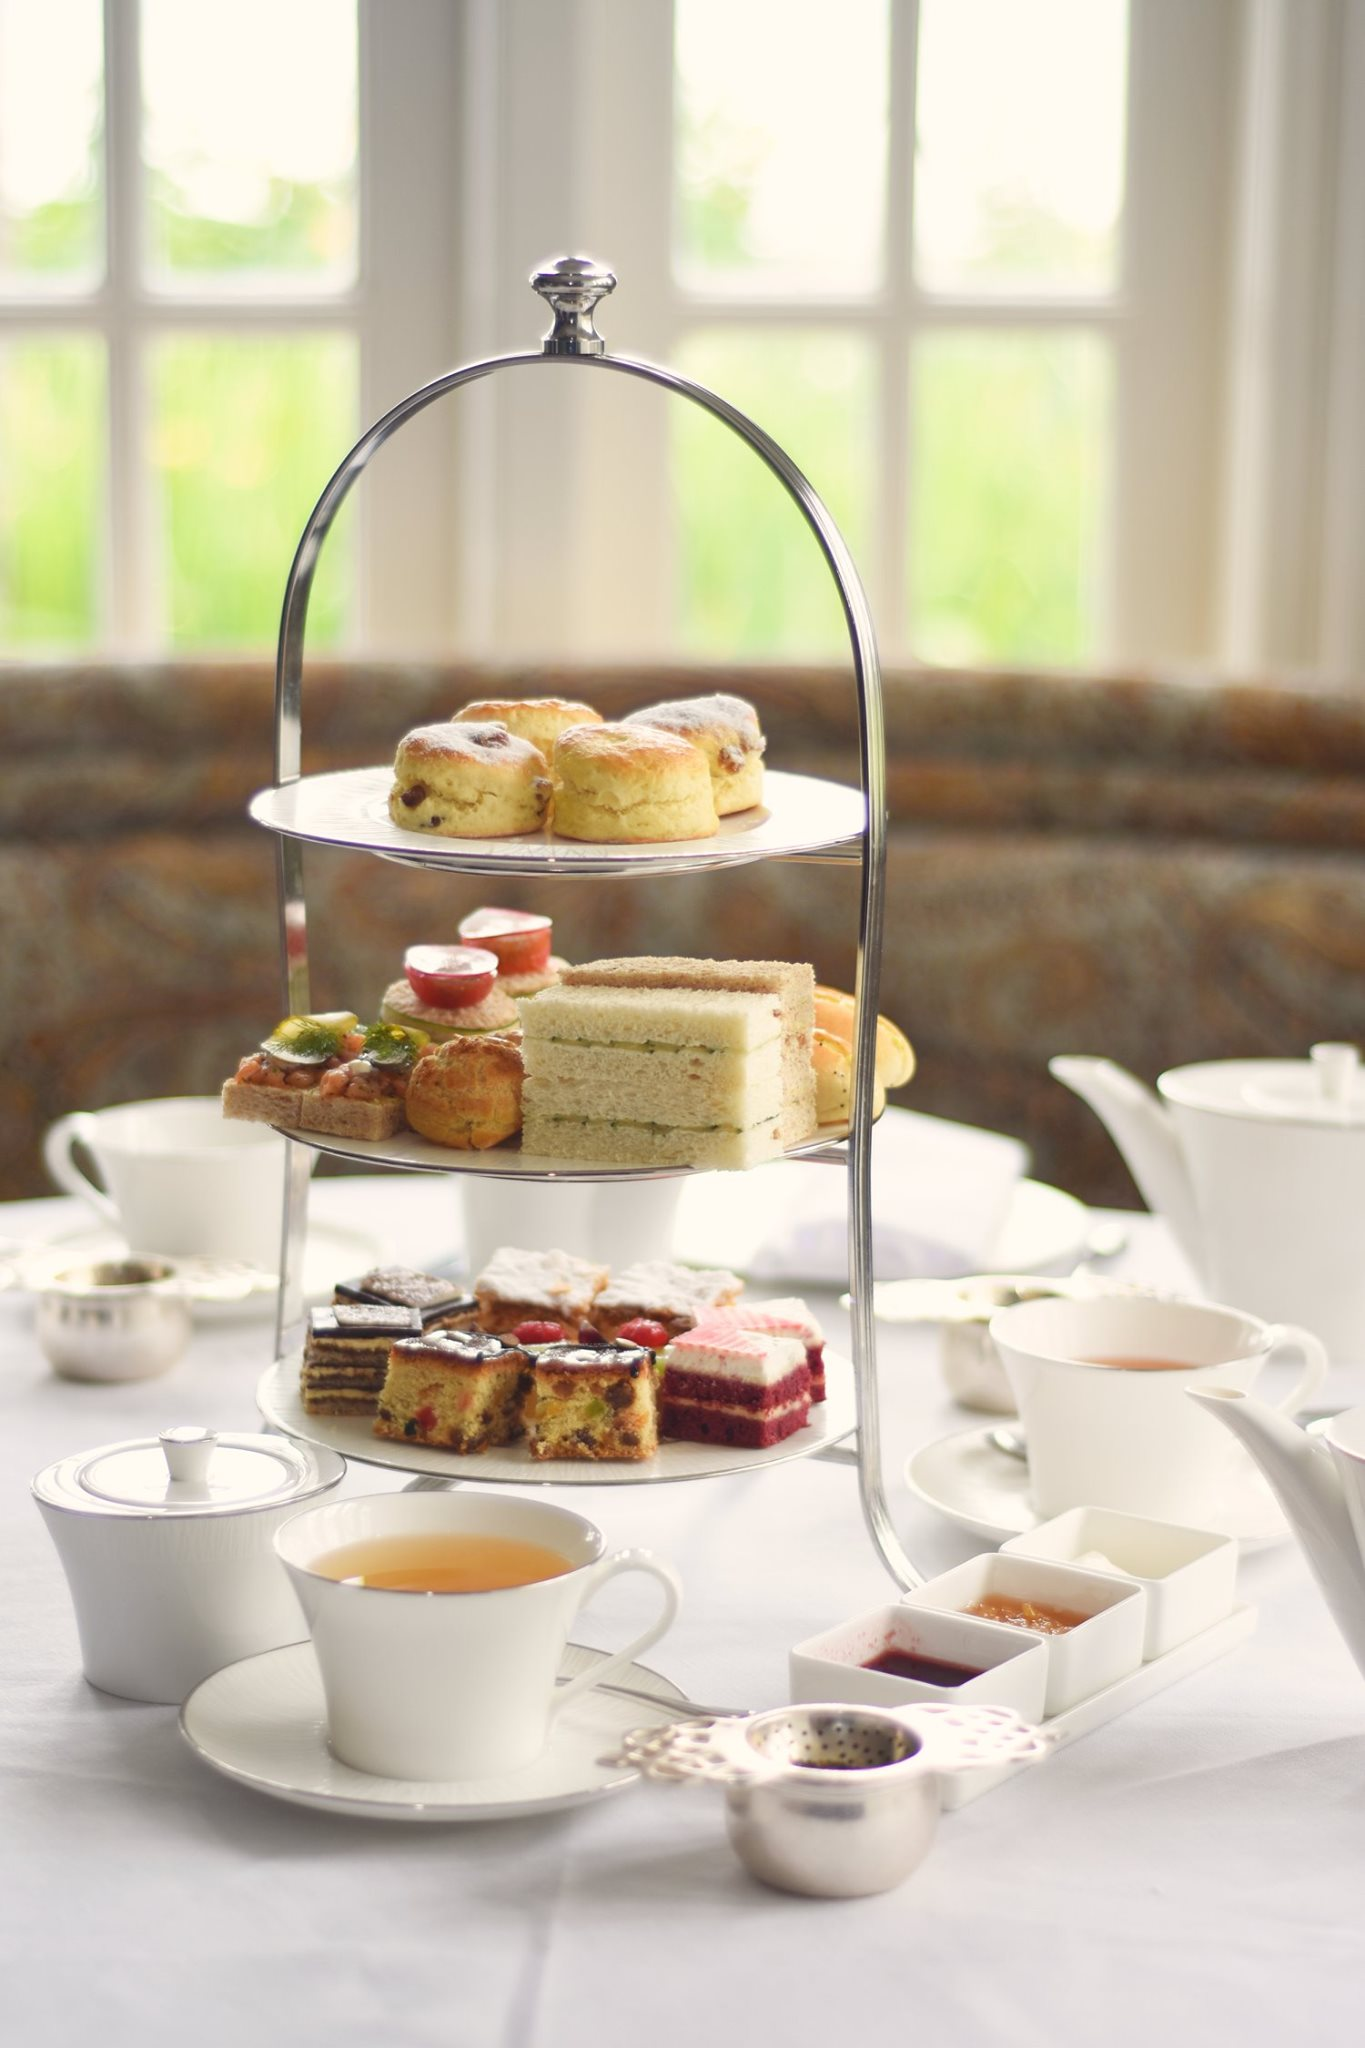 Impress your date with a mouth-watering afternoon tea.